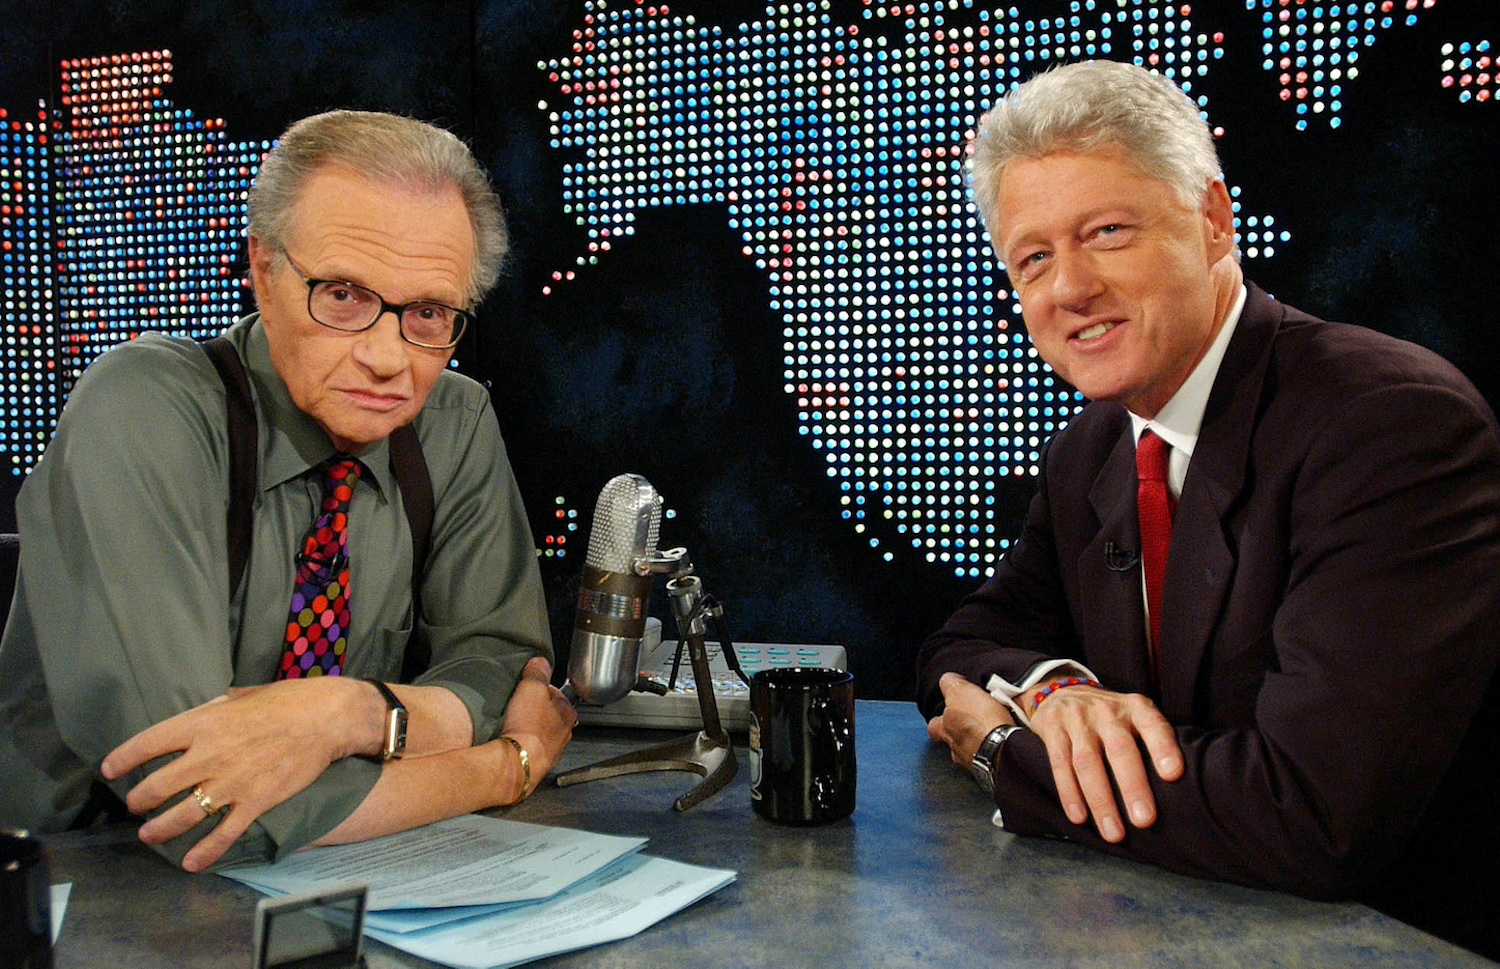 Larry King speaks with former US president Bill Clinton on CNN in New York on Sept 3, 2002. (Reuters File Photo)